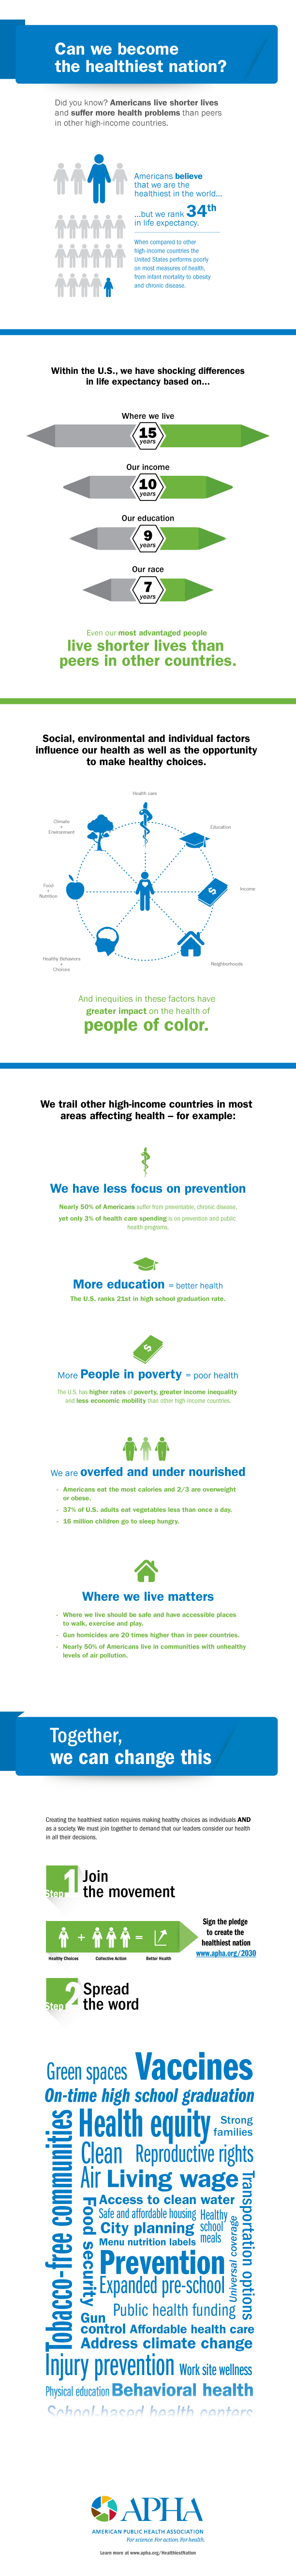 Infographic answering Can we become the healthiest nation?